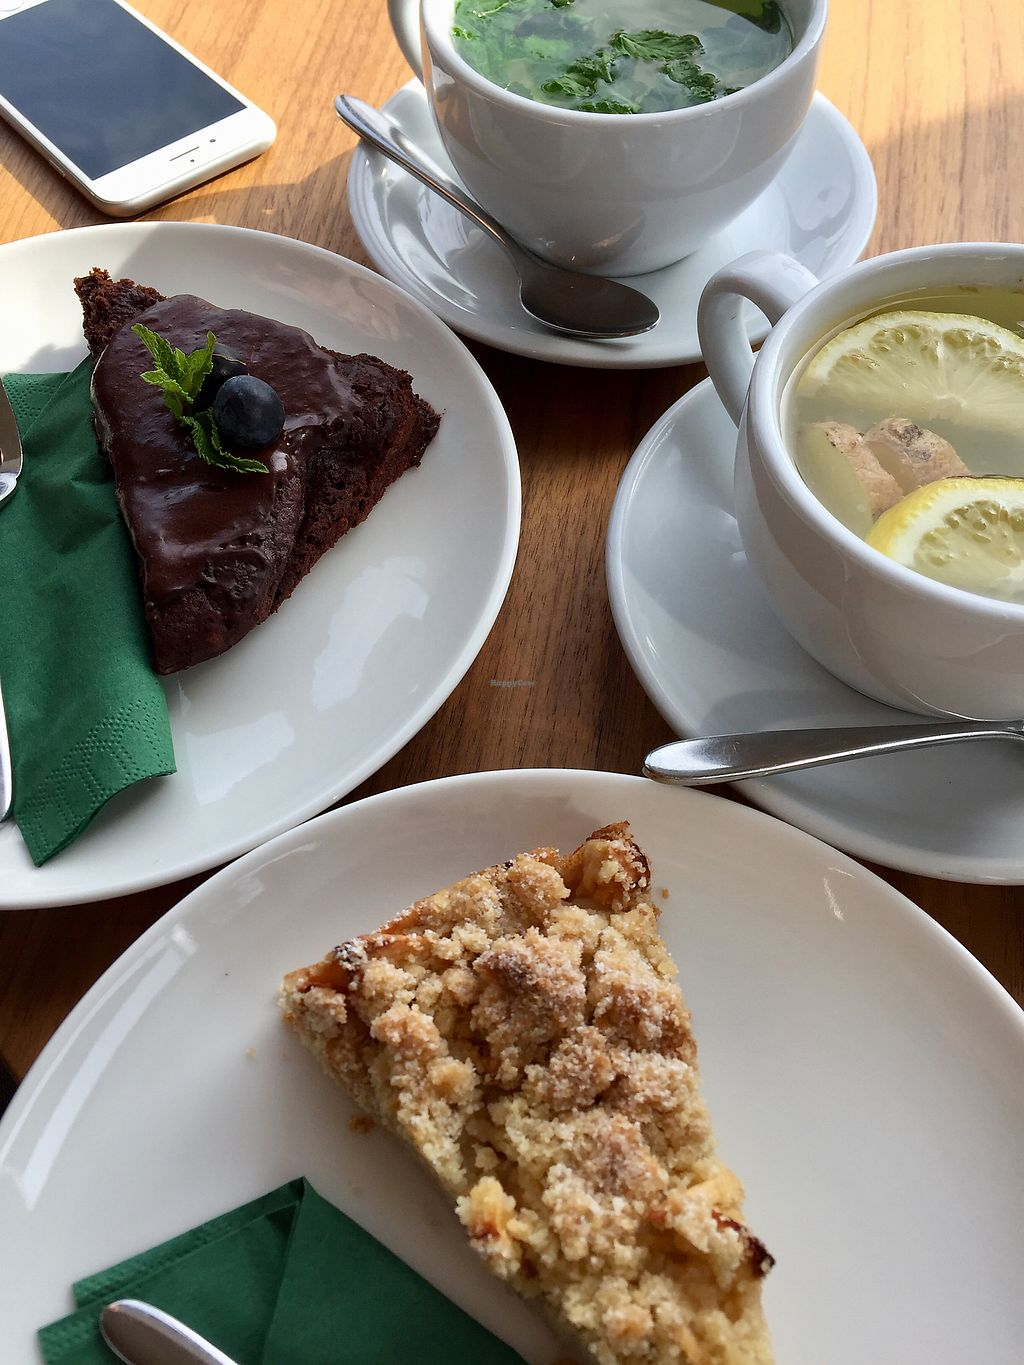 """Photo of Wagners Juicery & Health Food  by <a href=""""/members/profile/allgaeukind"""">allgaeukind</a> <br/>Apple Pie, Brownie, lemon-ginger-Tea and fresh mint-tea  <br/> October 22, 2017  - <a href='/contact/abuse/image/103356/317613'>Report</a>"""